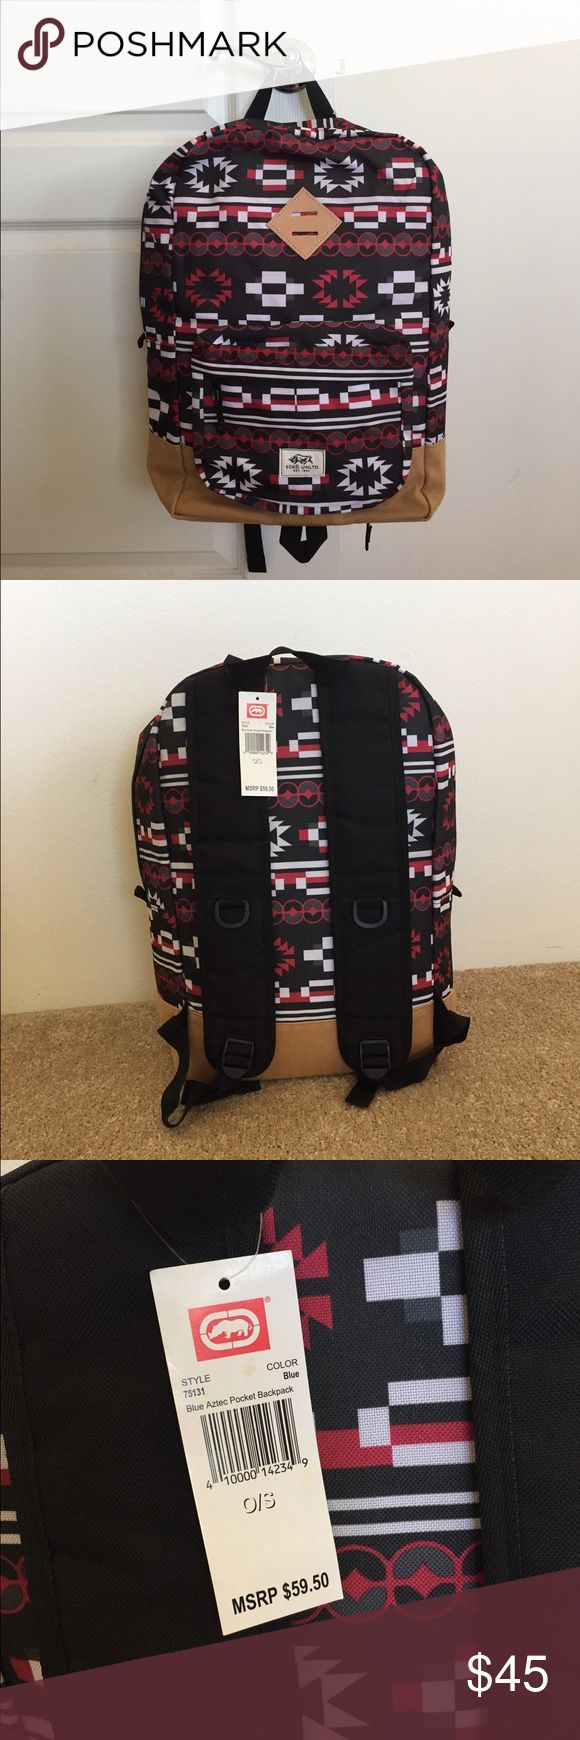 Google themes ecko - Ecko Unltd Backpack I Received This Backpack As A Gift About Three Years Ago